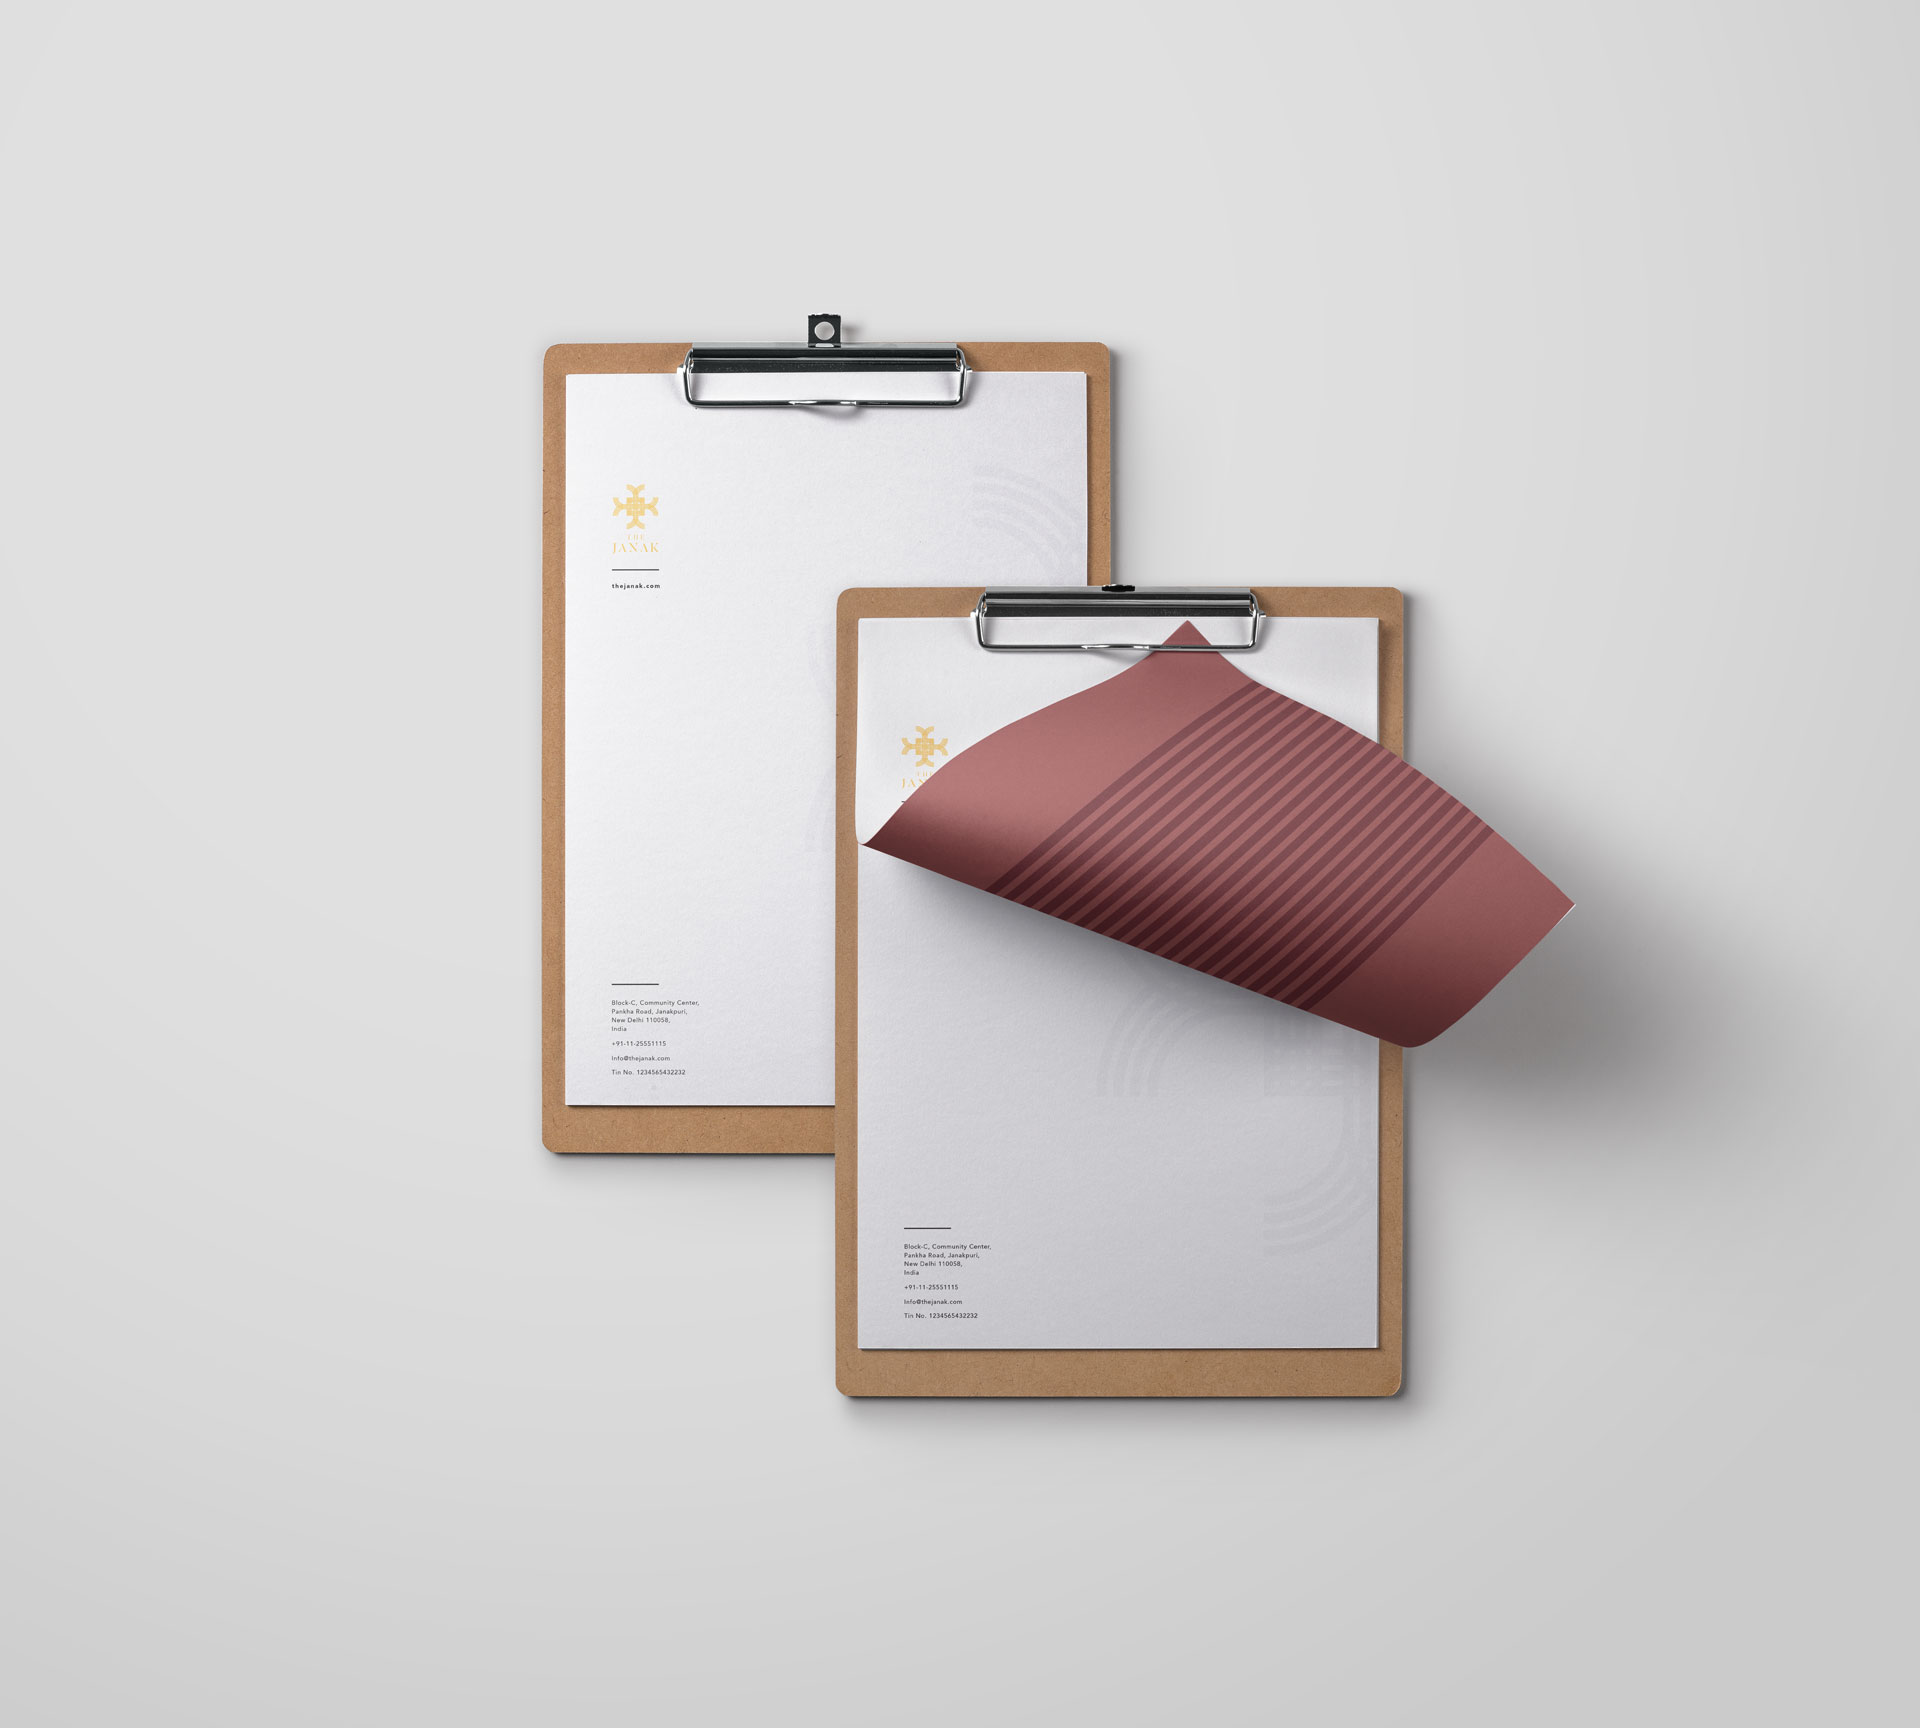 Clipboard-Office-Brand-Mockup.jpg